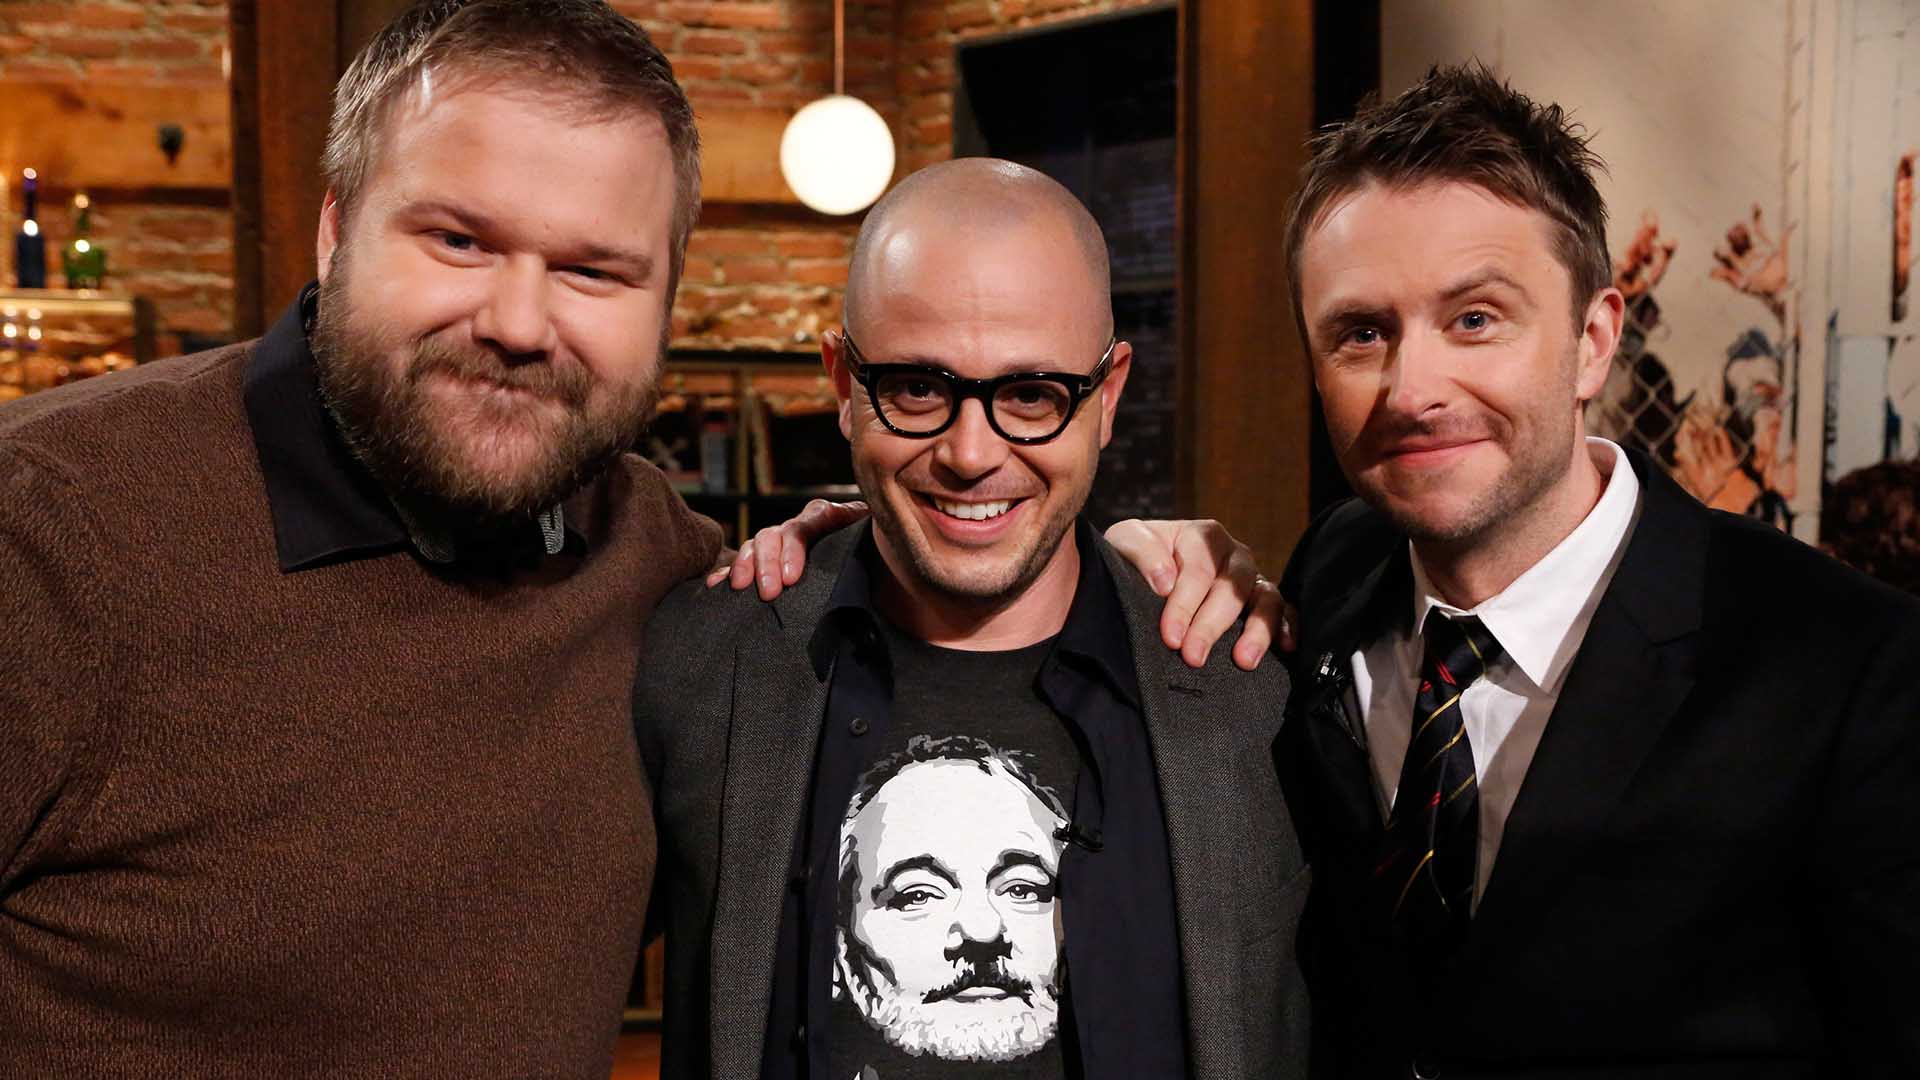 Episode 308 Bonus Video: Talking Dead